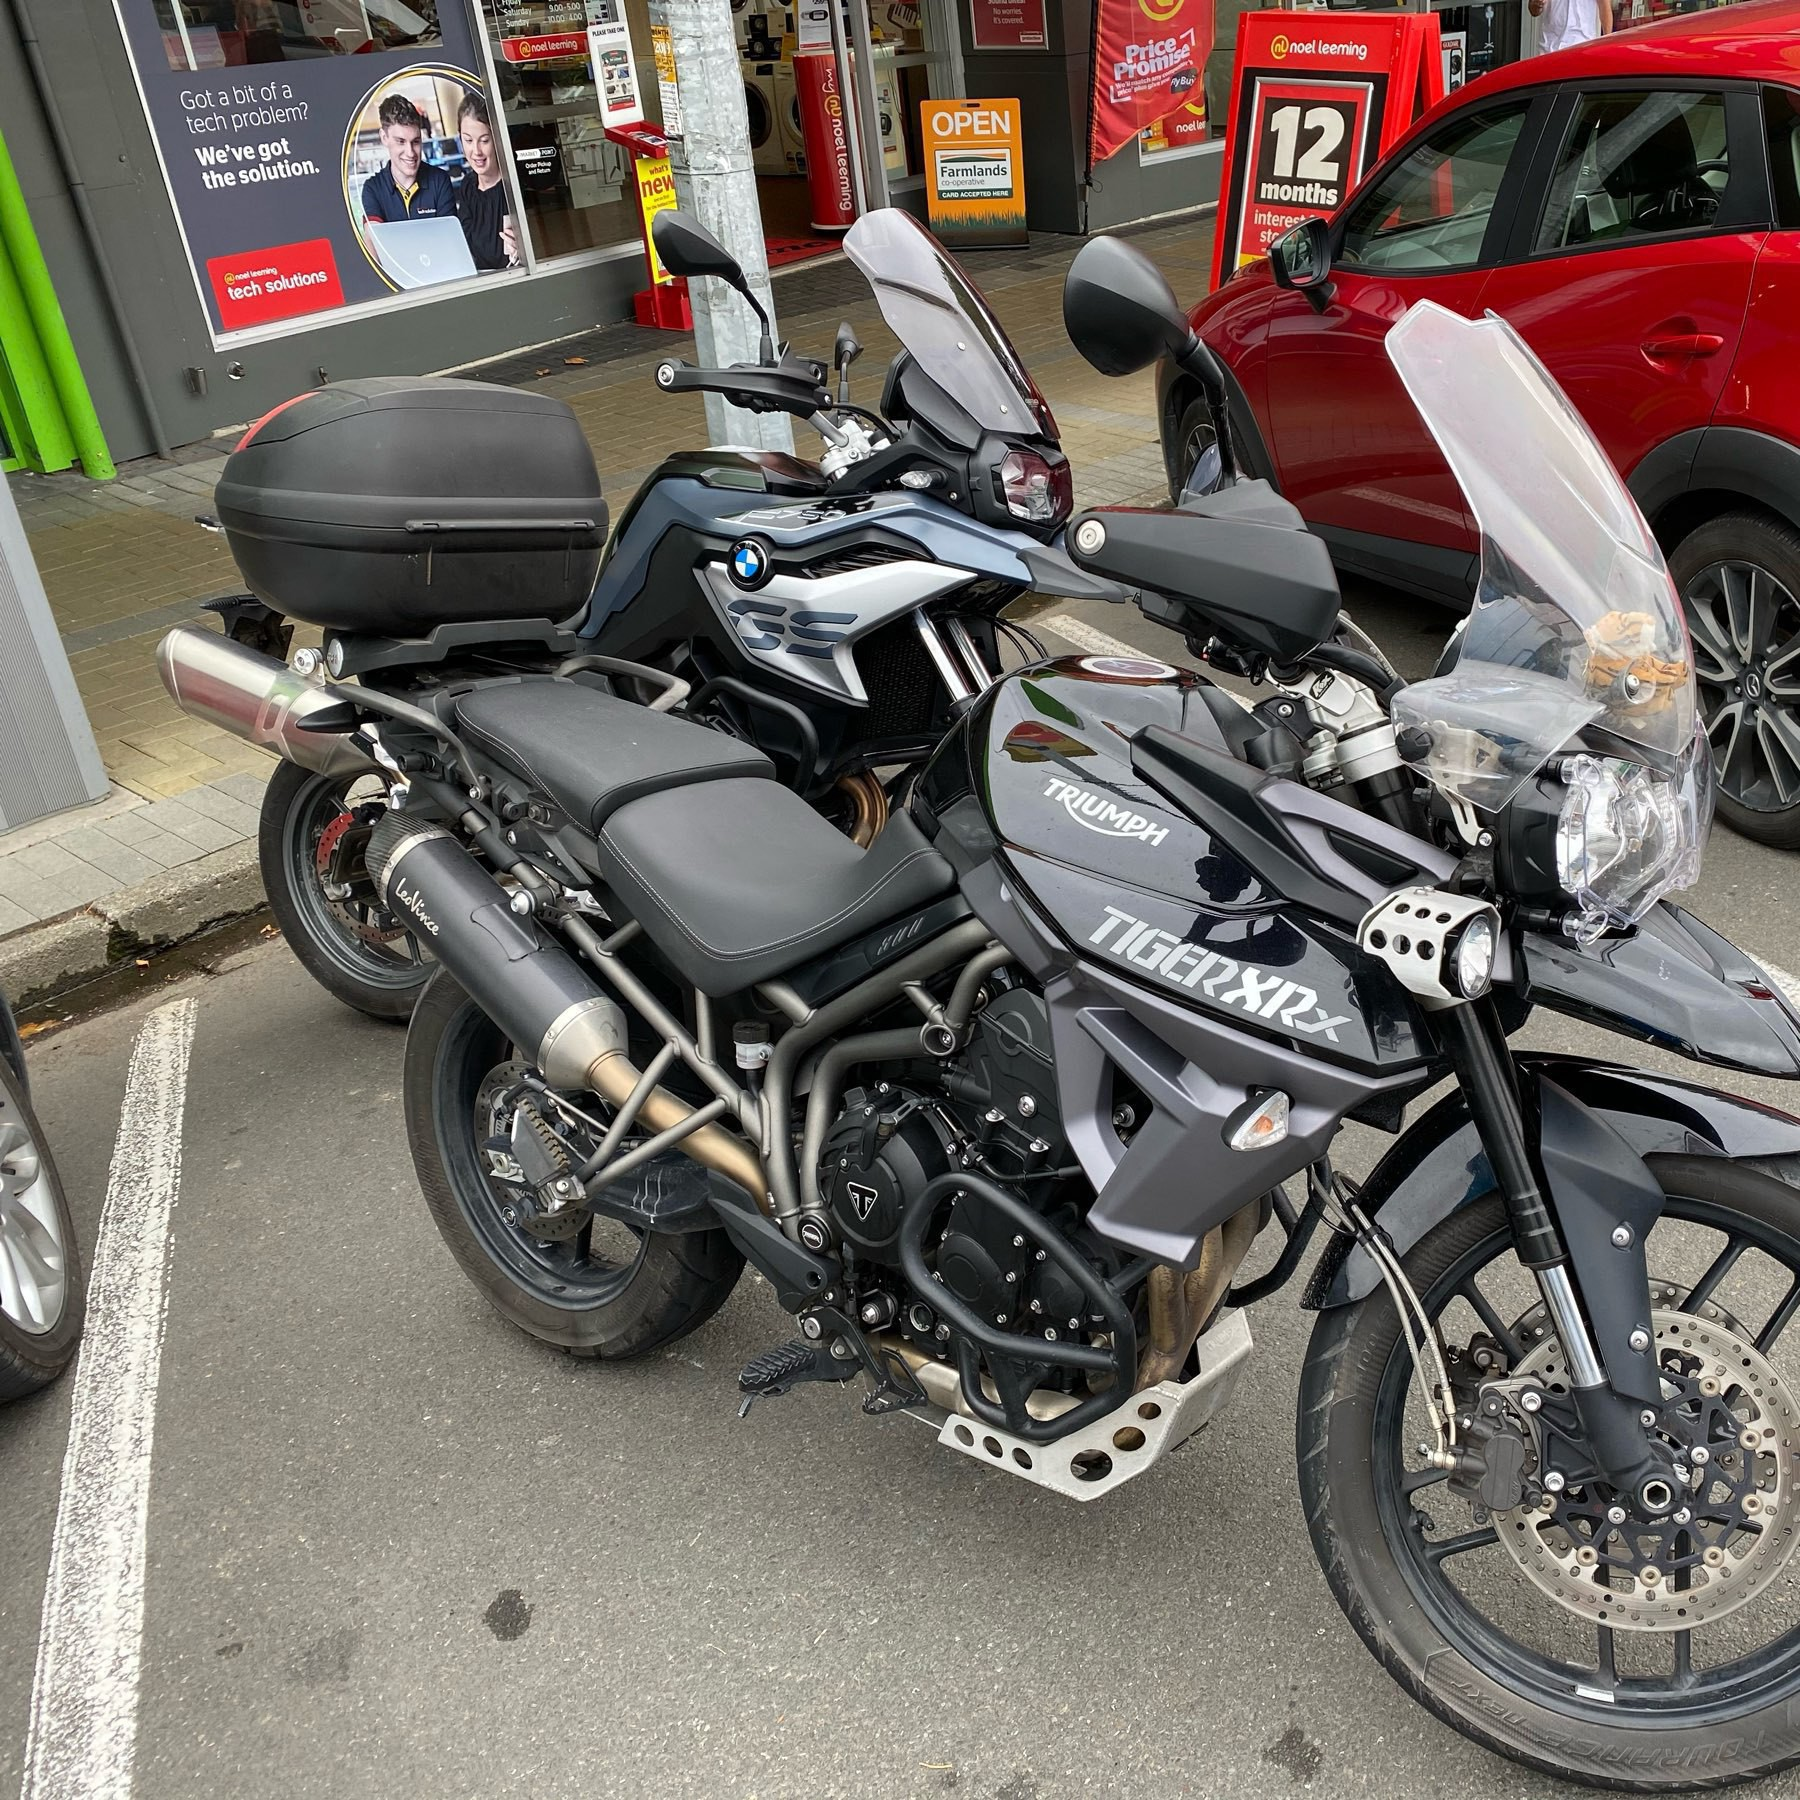 Two large motorcycles parked in a town.